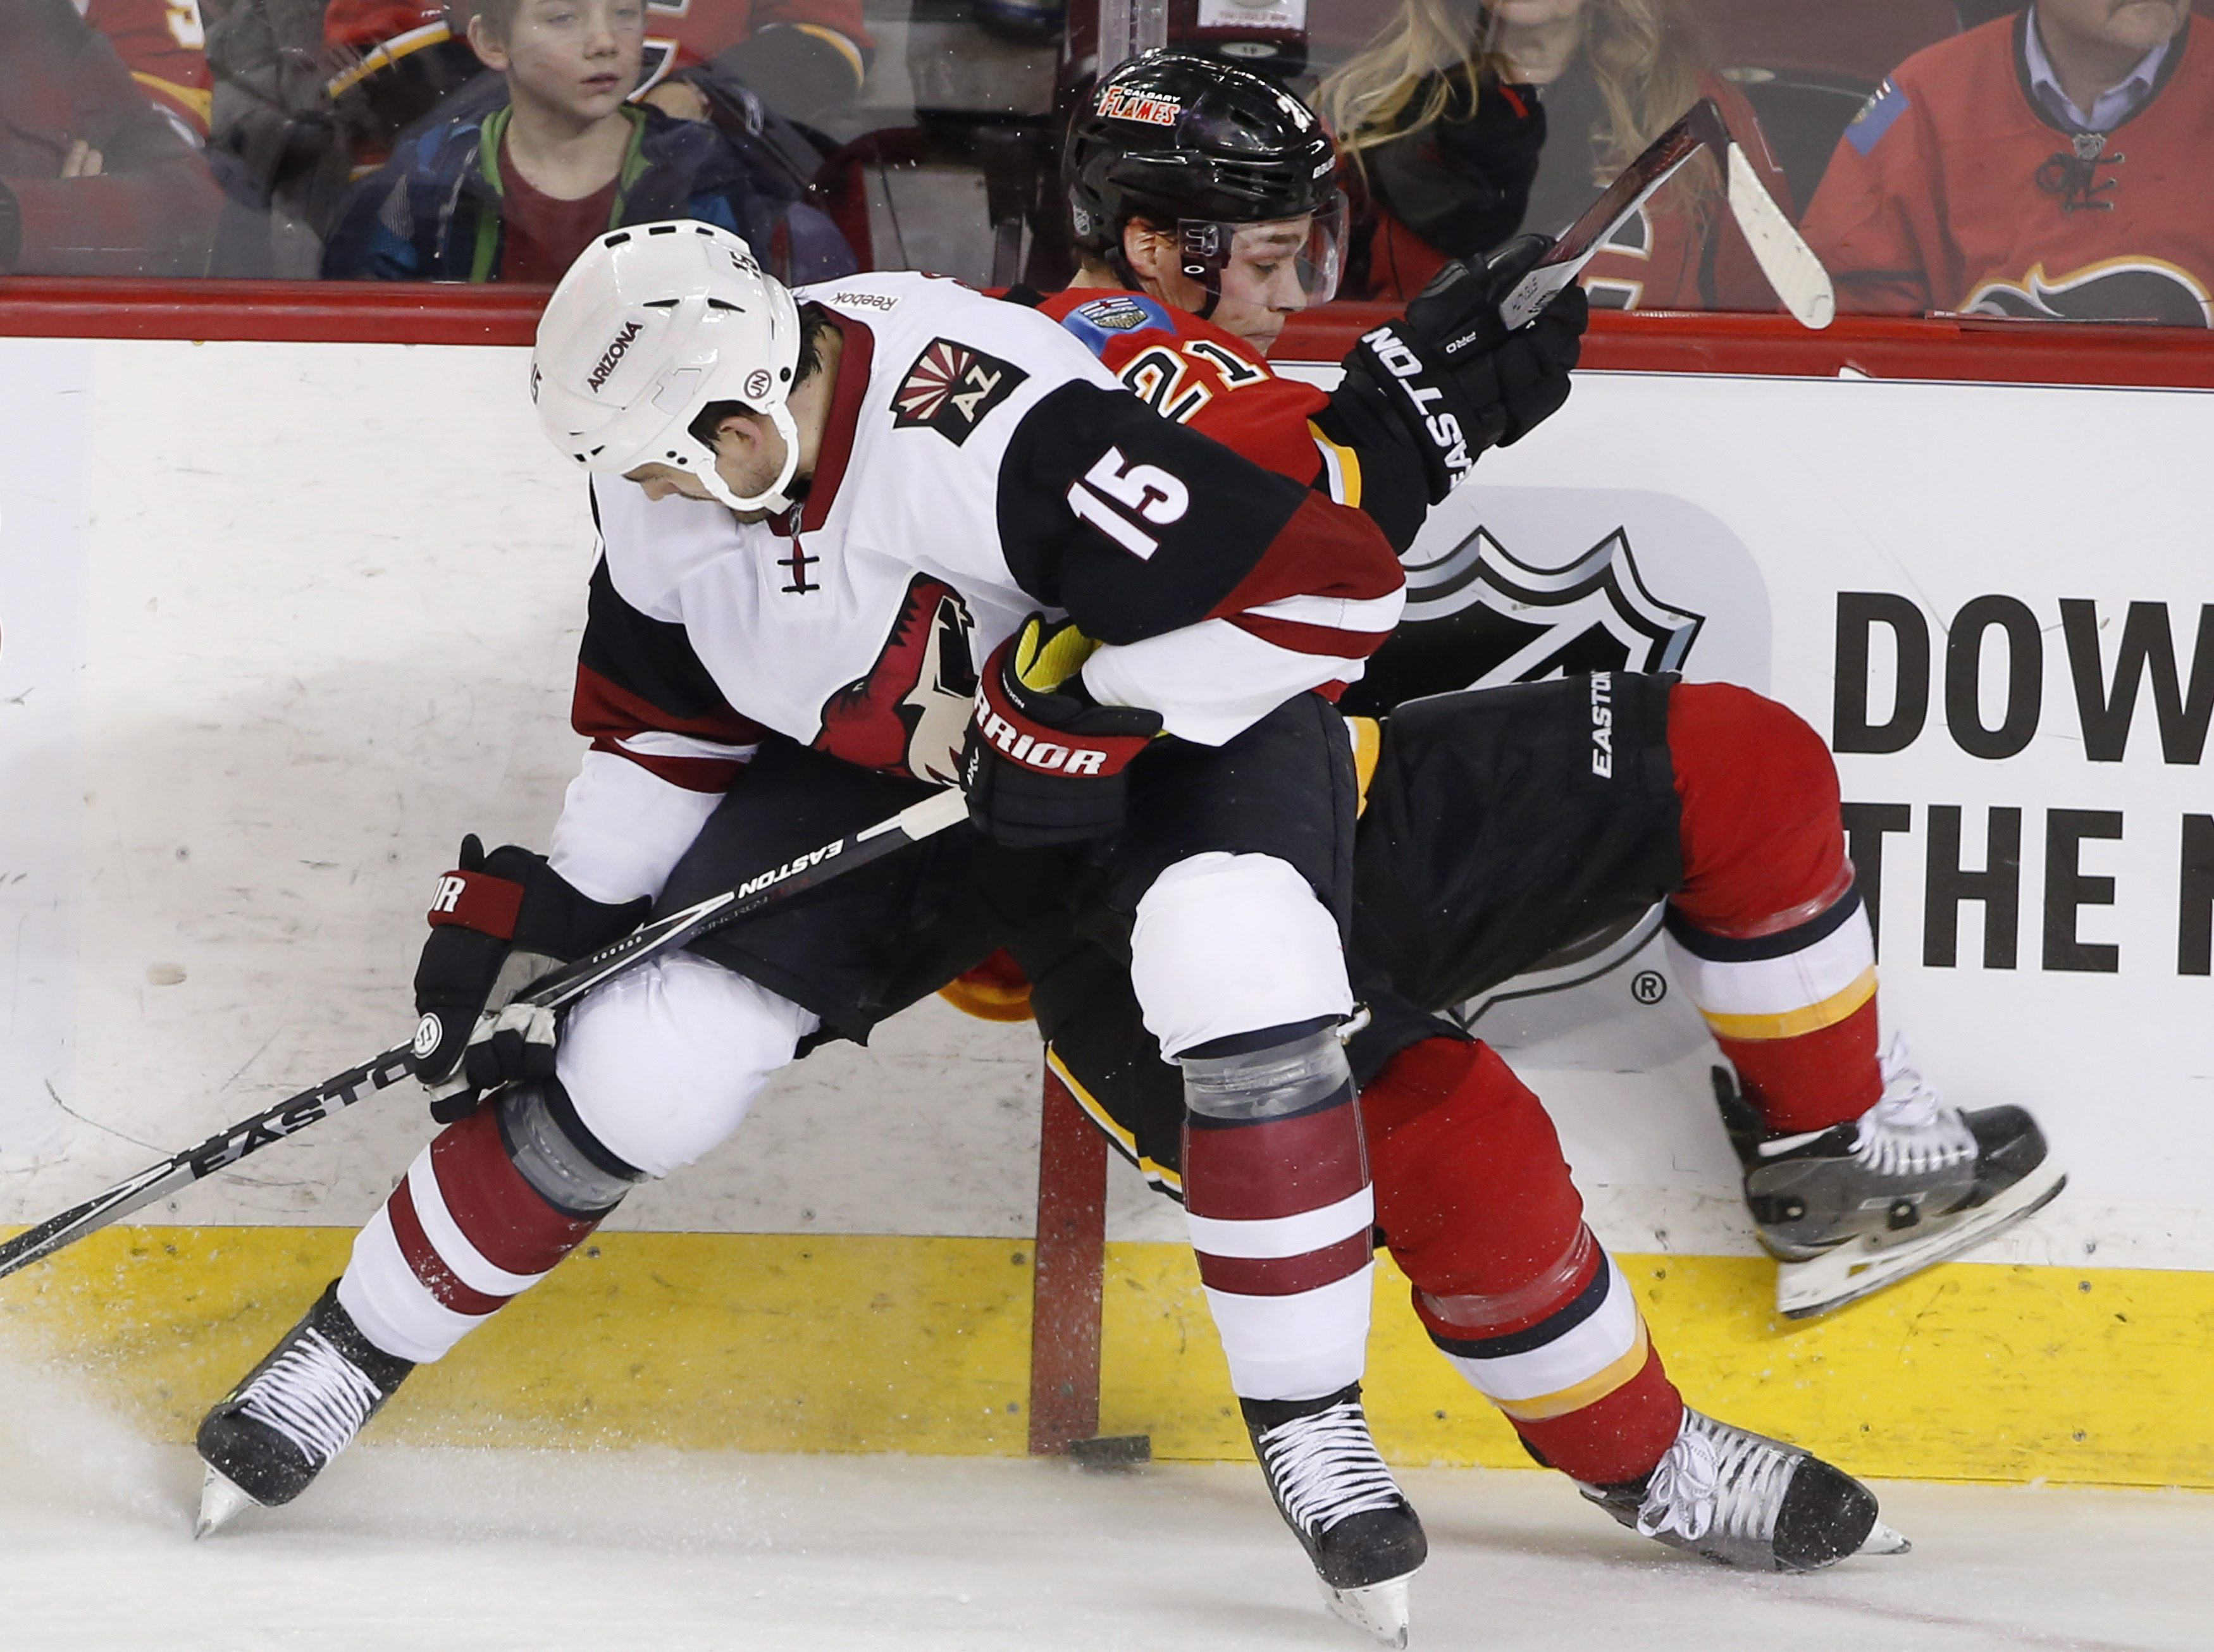 Arizona Coyotes' Boyd Gordon, left, checks Calgary Flames' Mason Raymond off the puck during the second period of an NHL hockey game Thursday, Jan. 7, 2015, in Calgary, Alberta. (Larry MacDougal/The Canadian Press via AP)